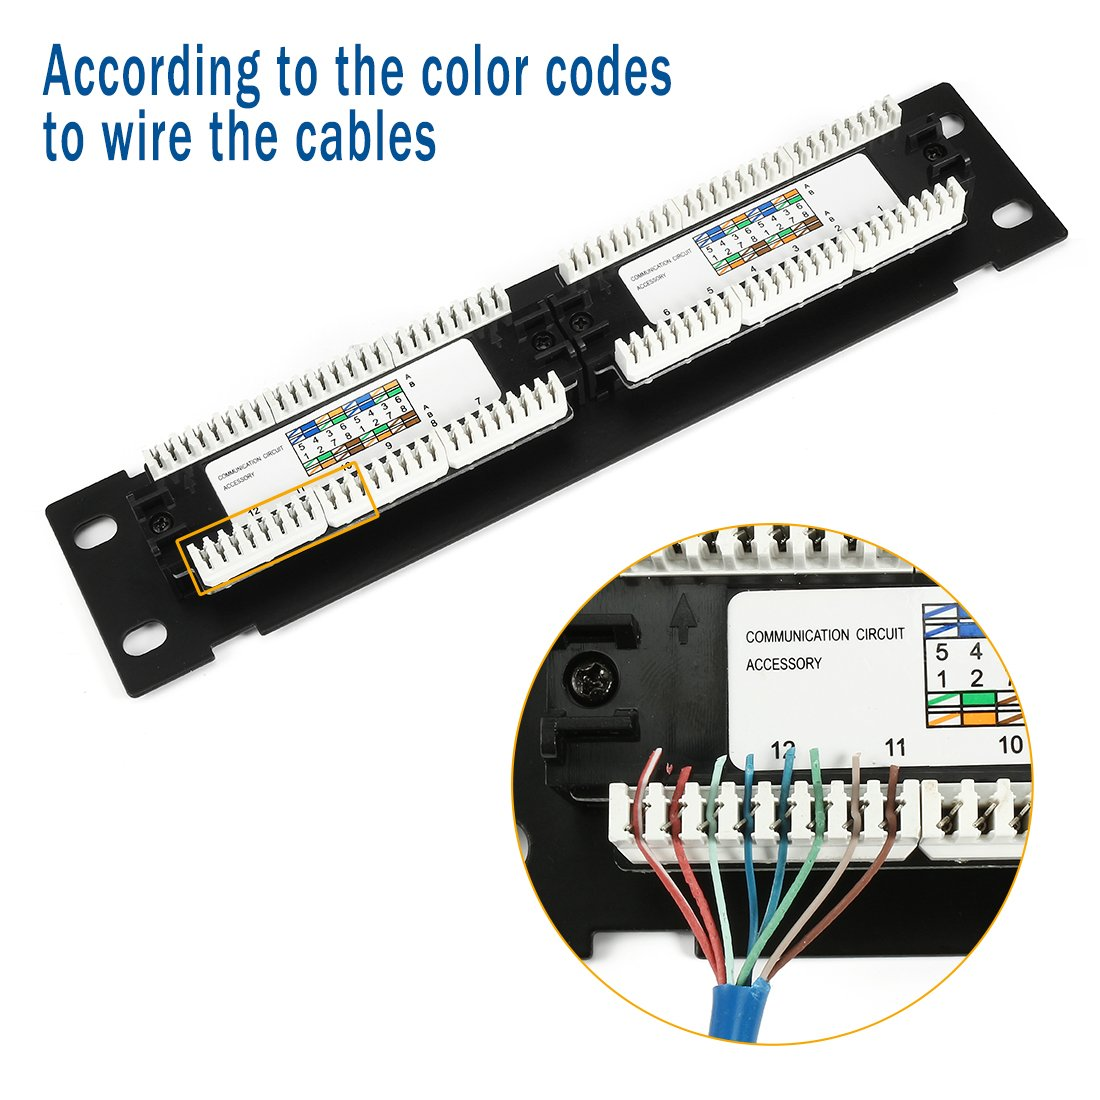 Uxcell 12 Port Cat6 Rj45 Ethernet Patch Panel Utp Wiring Diagram Unsheilded 10 Inch With Wallmount Bracket Black Computers Accessories